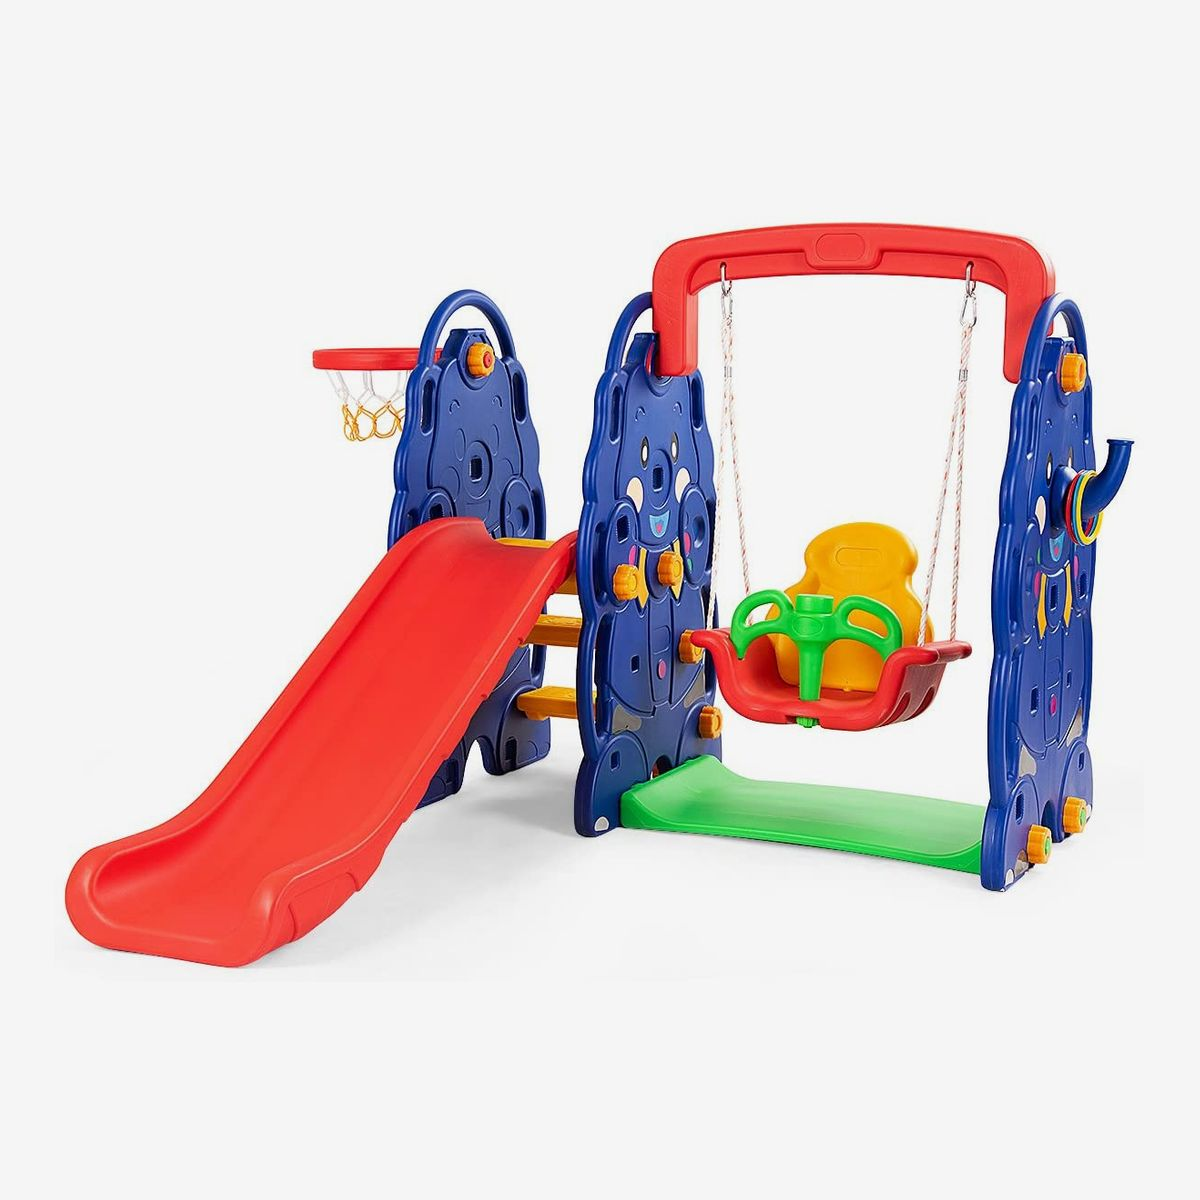 7 Best Climbers For Kids And Toddlers 2020 The Strategist New York Magazine